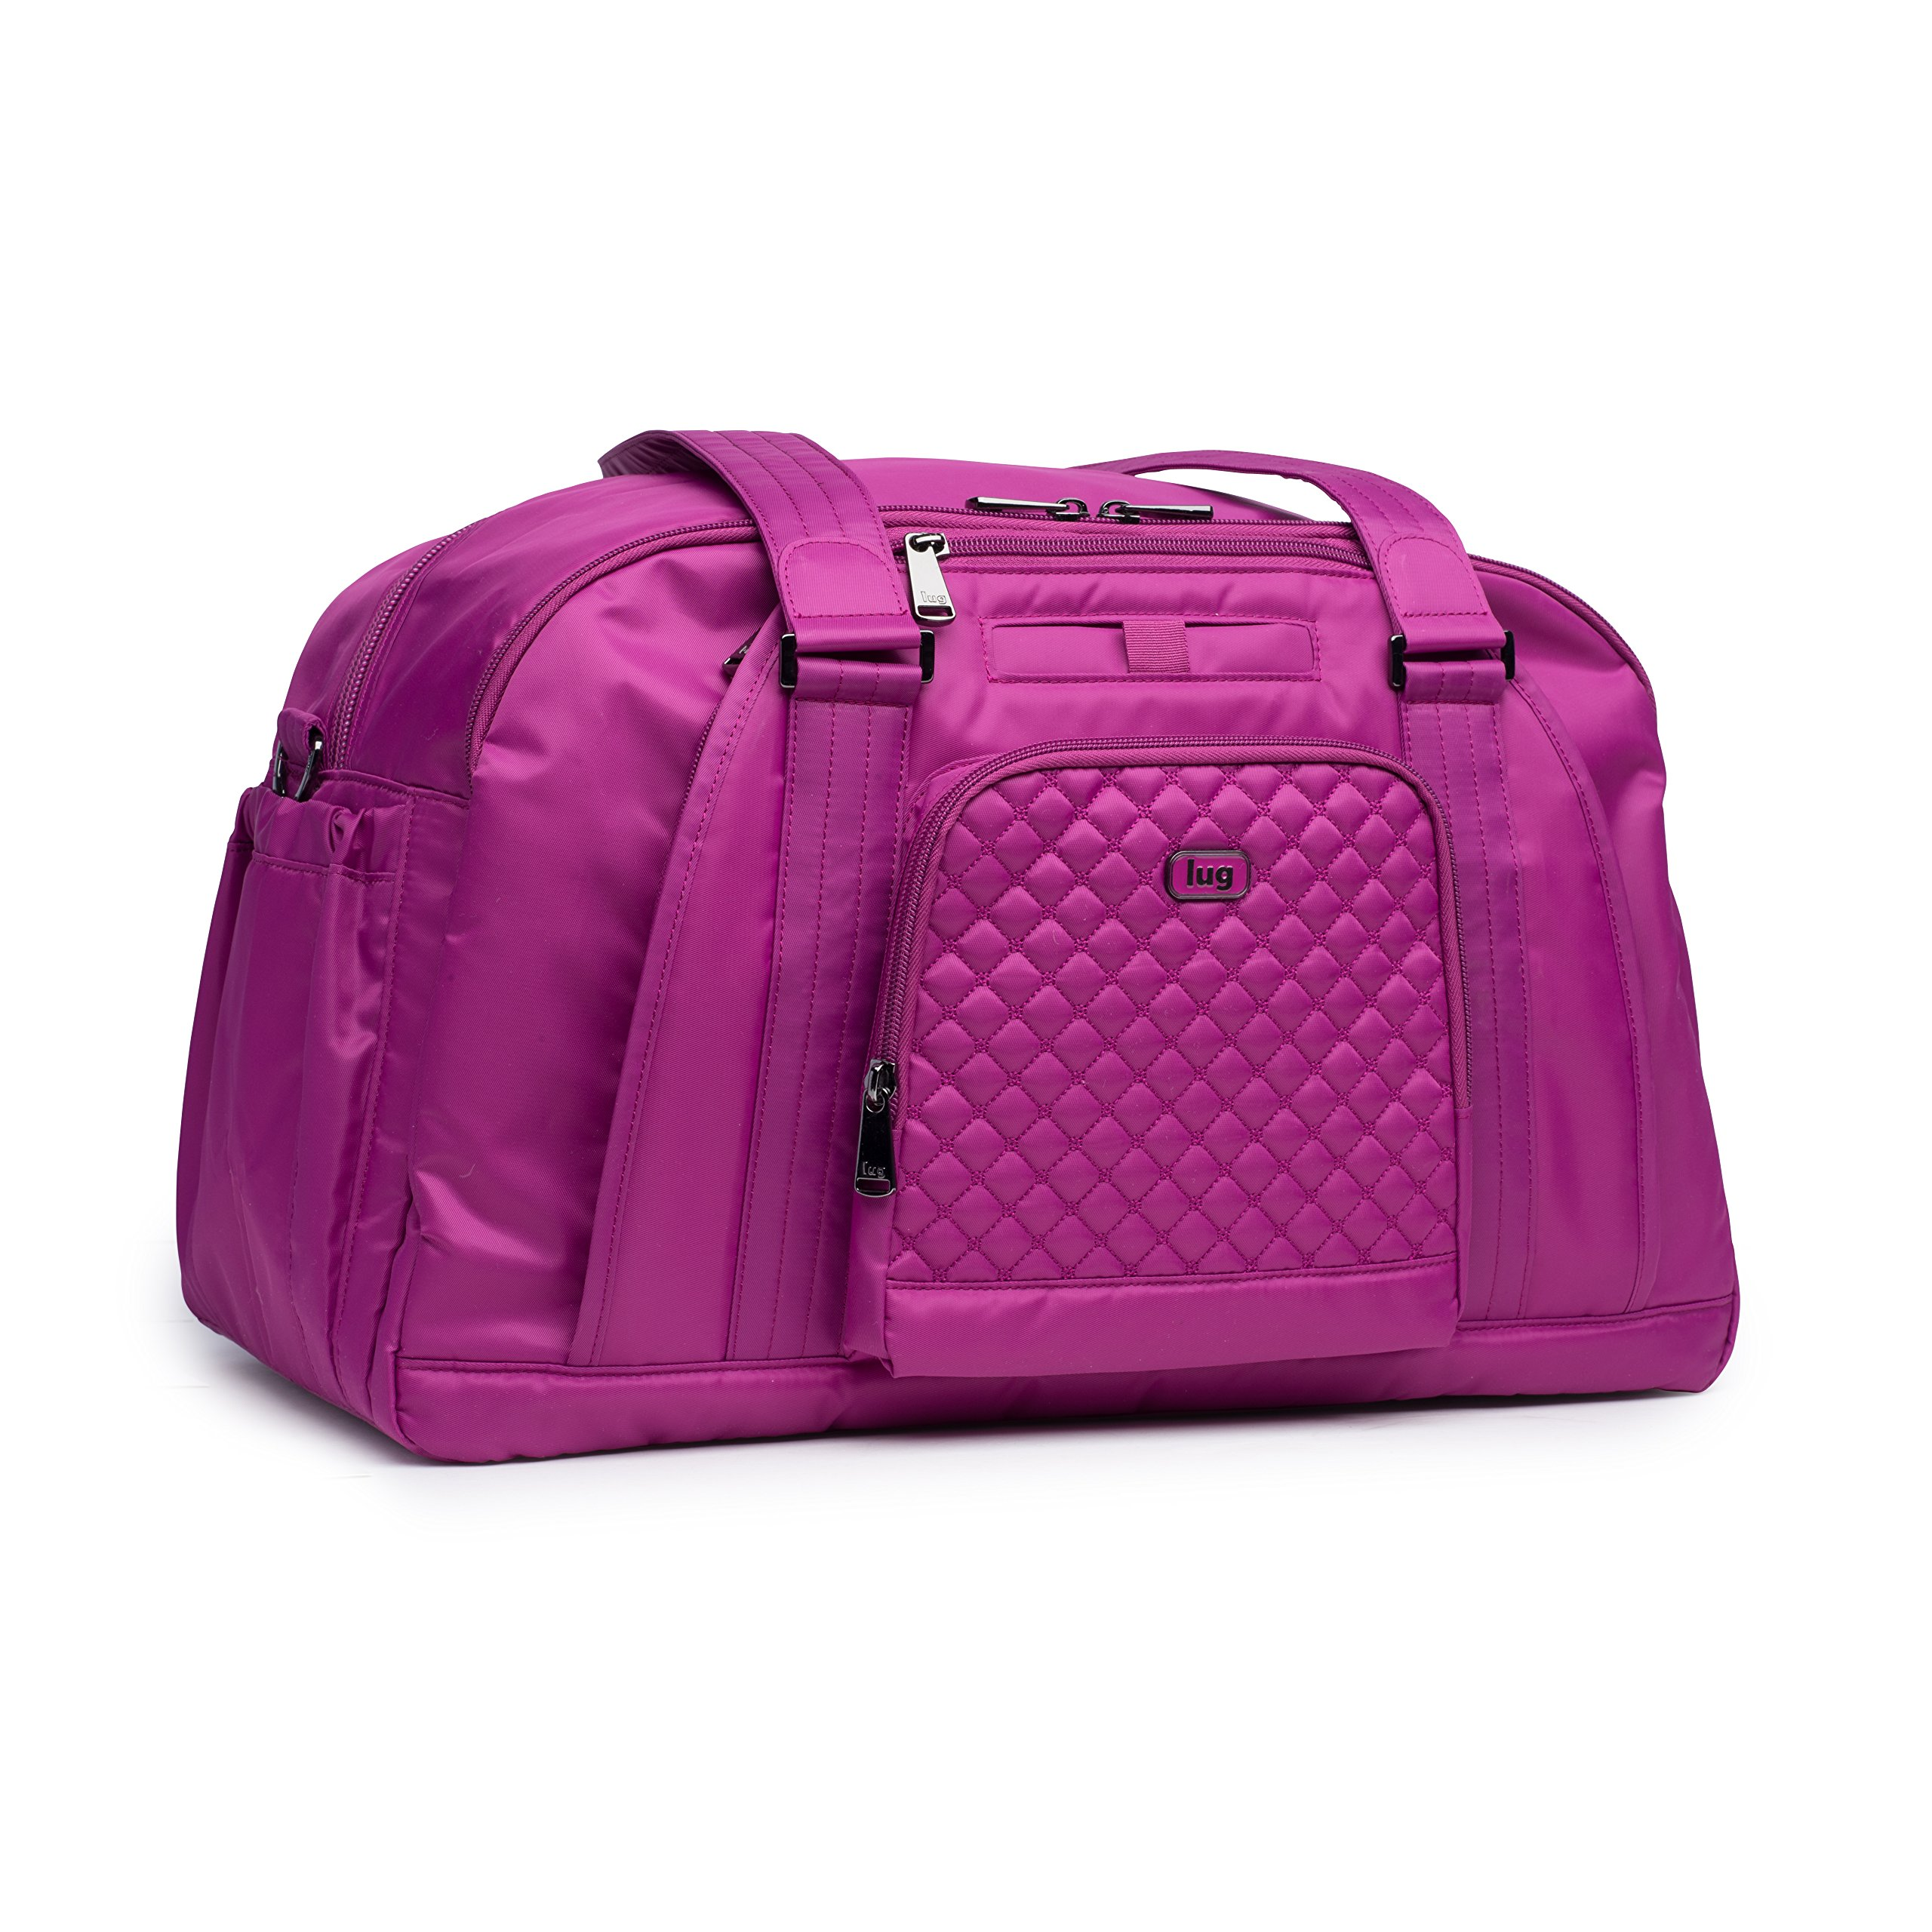 Lug Propeller Gym/Overnight Bag, Orchid Pink